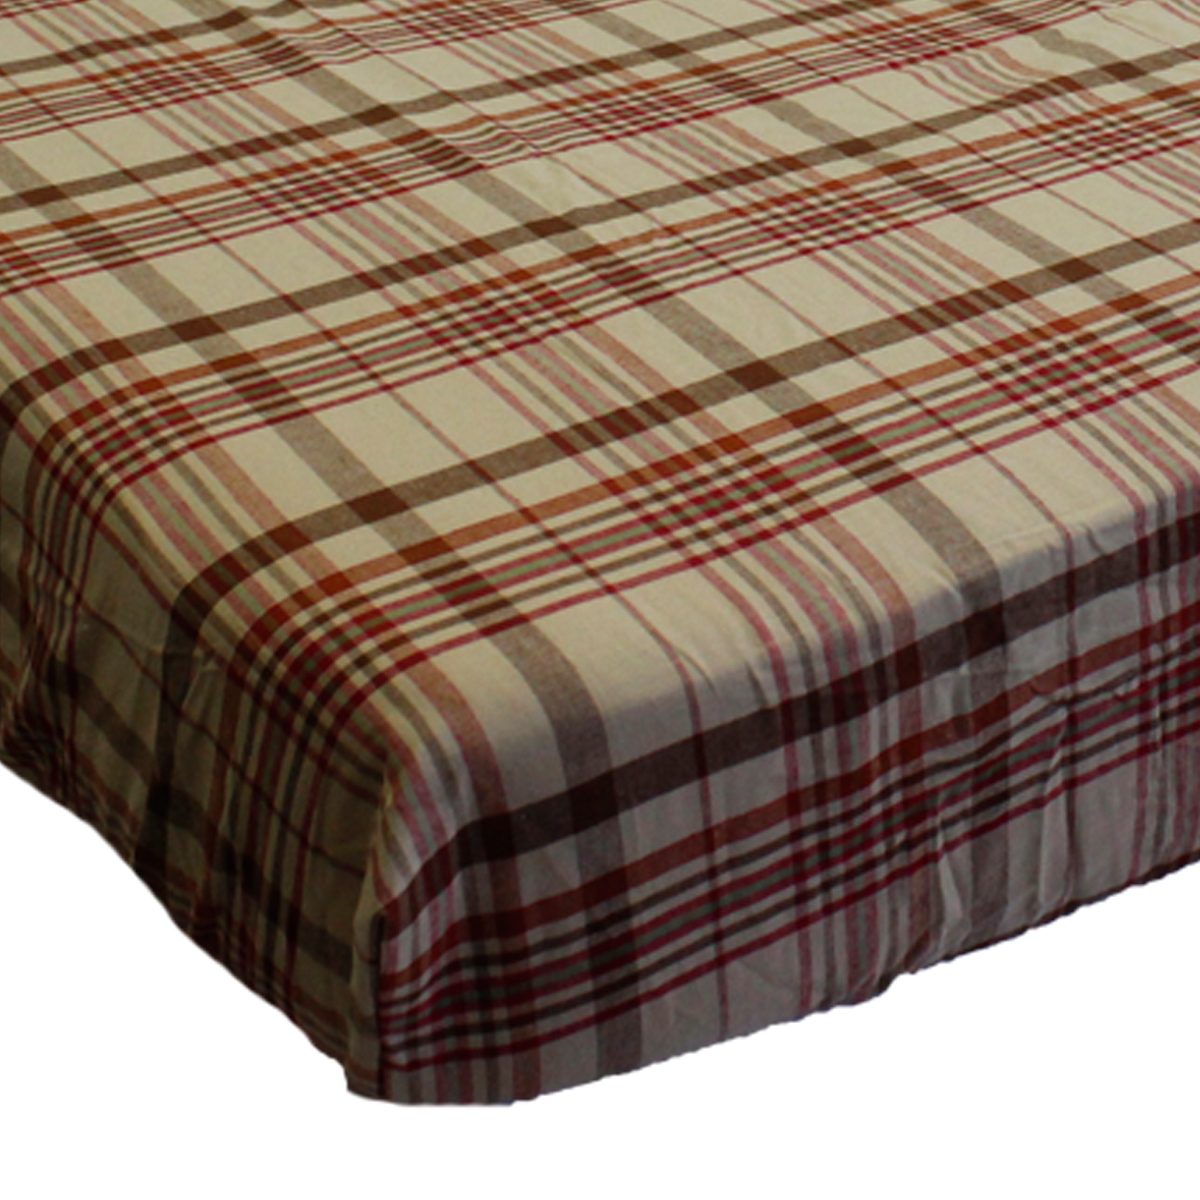 Crown Crafts Infant Products 16992065 Little Mvp Fitted Crib Sheet Plaid Toddler Bedding